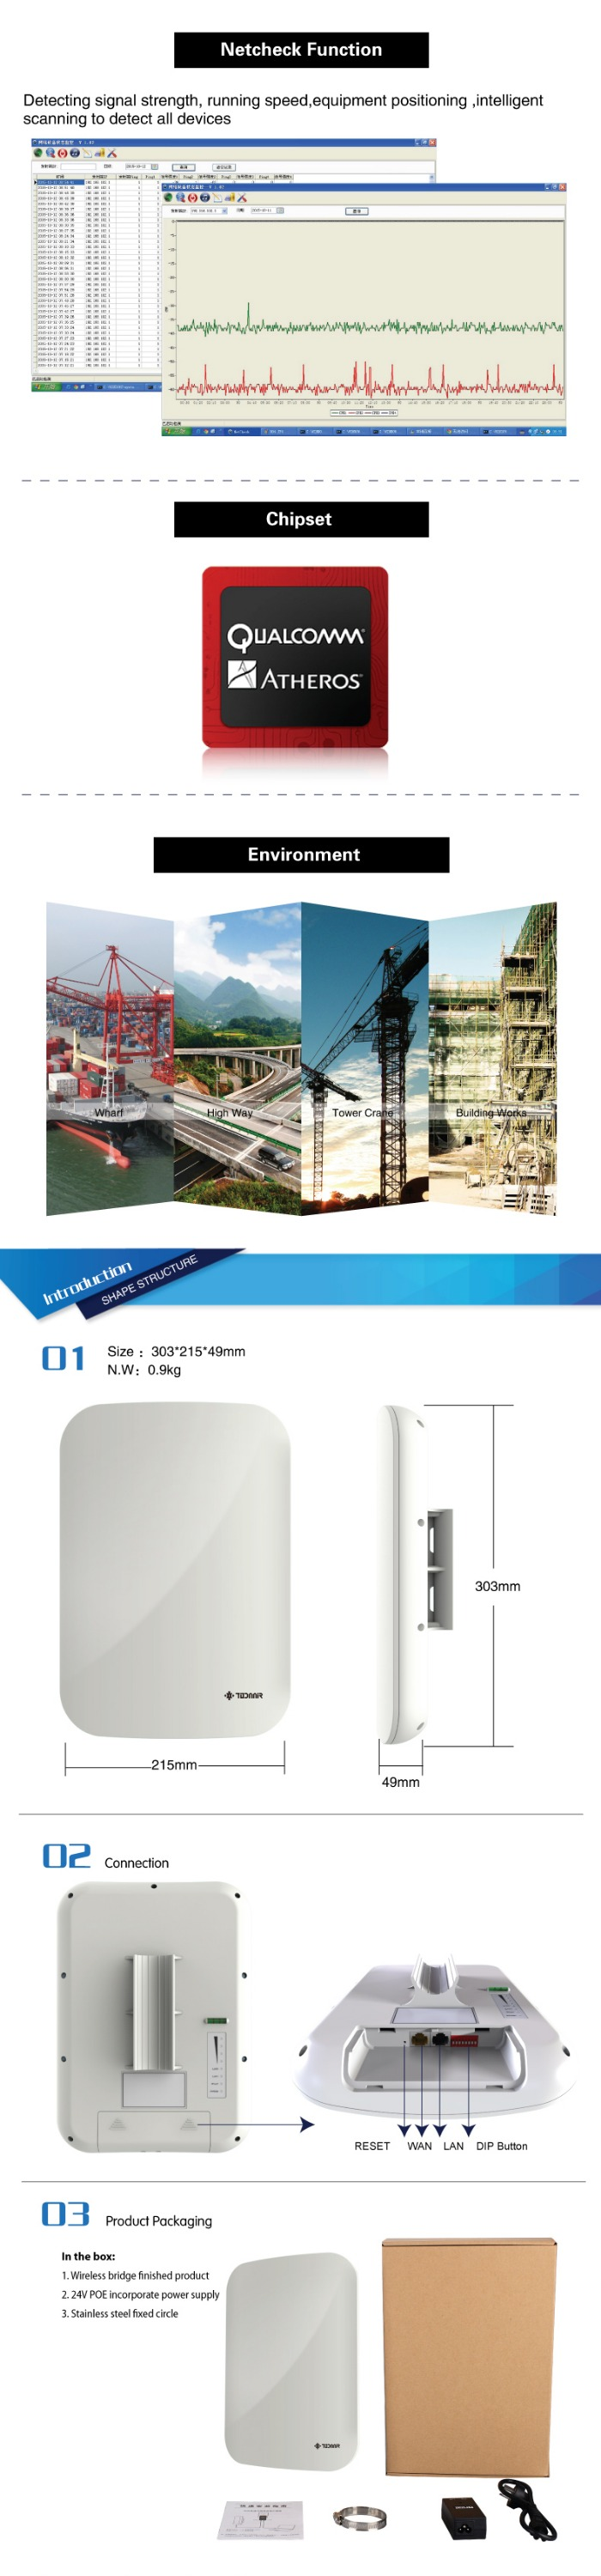 wilressoutdoor bridge 300Mbps 5km Wireless Indoor Outdoor AP Router Bridge